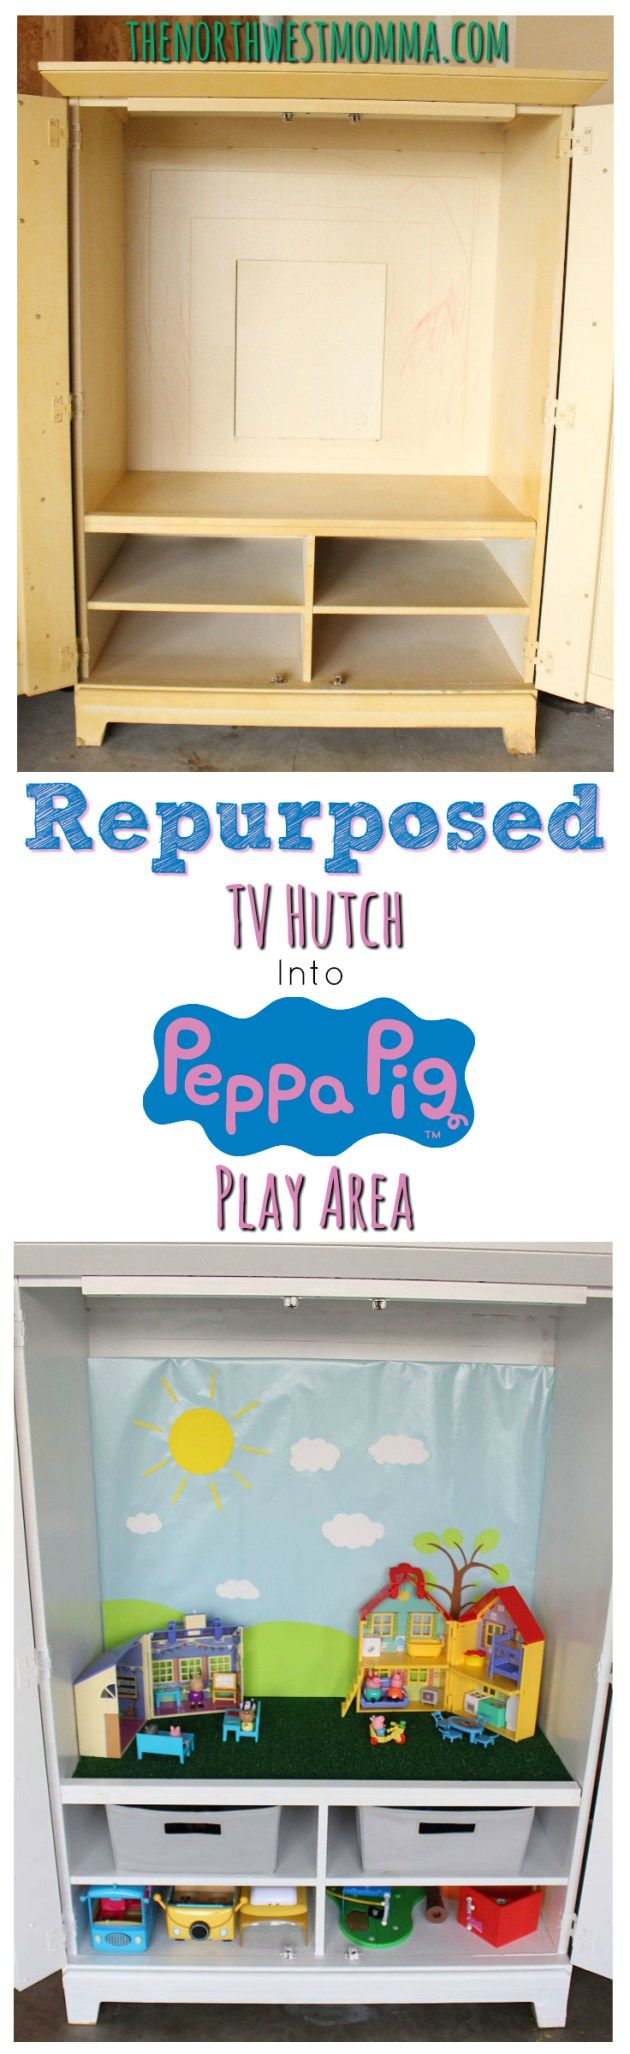 Repurpose an old TV Hutch into the perfect play space for your own Peppa Pig fanatic!